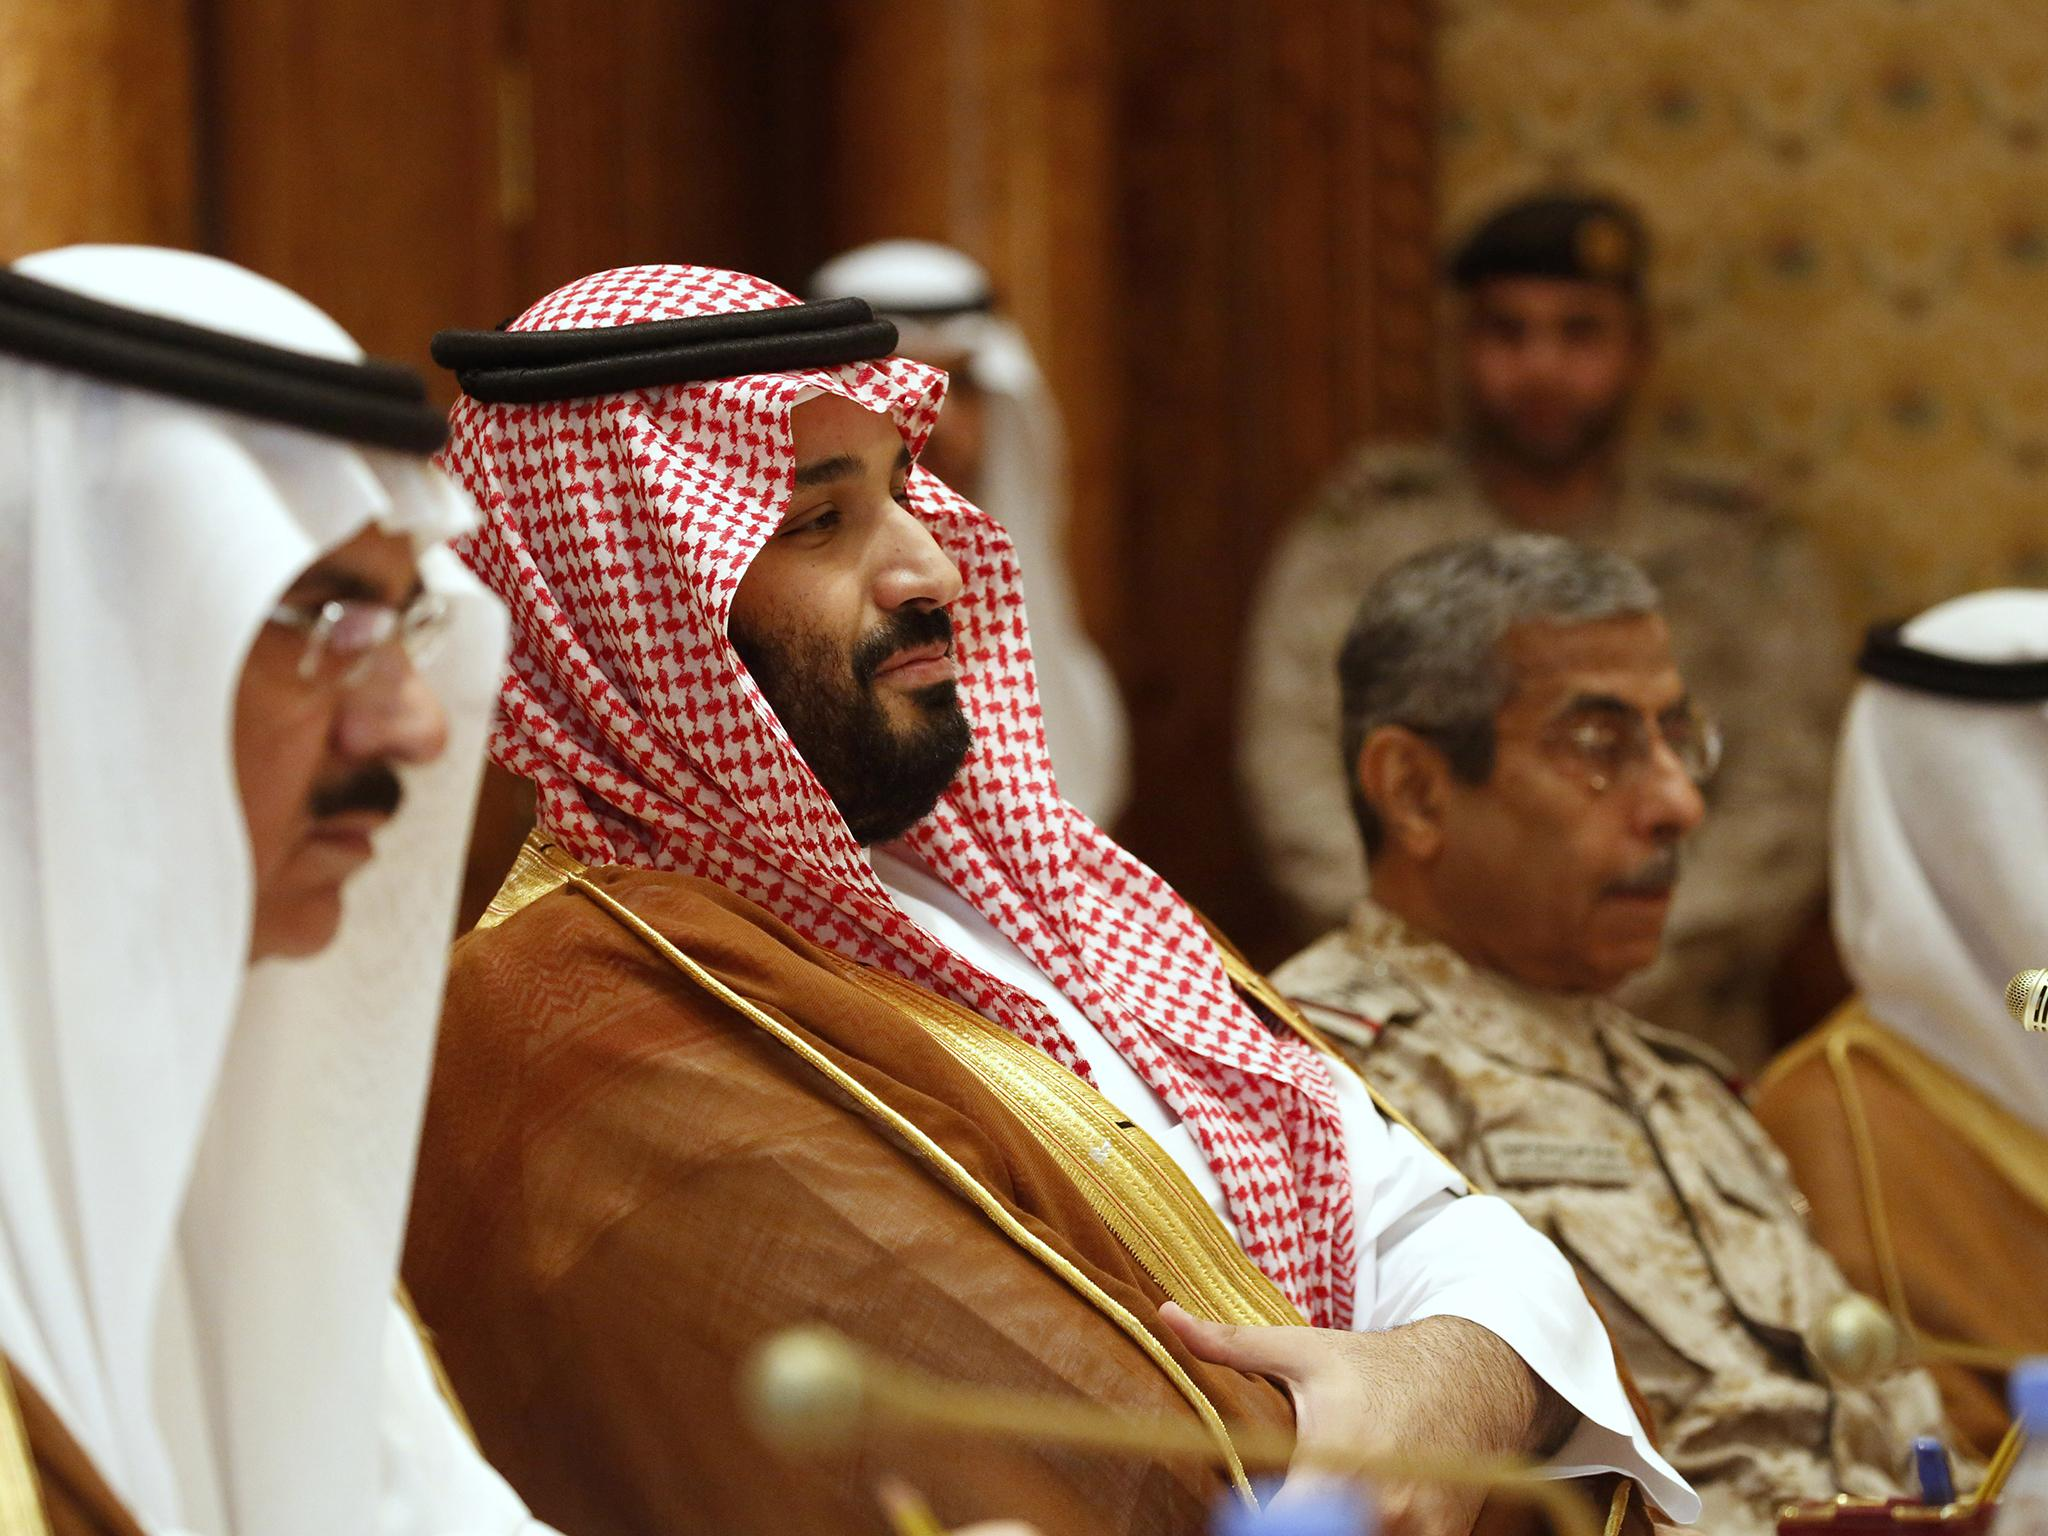 Saudi Arabia using anti-terror laws to detain and torture political dissidents, UN says